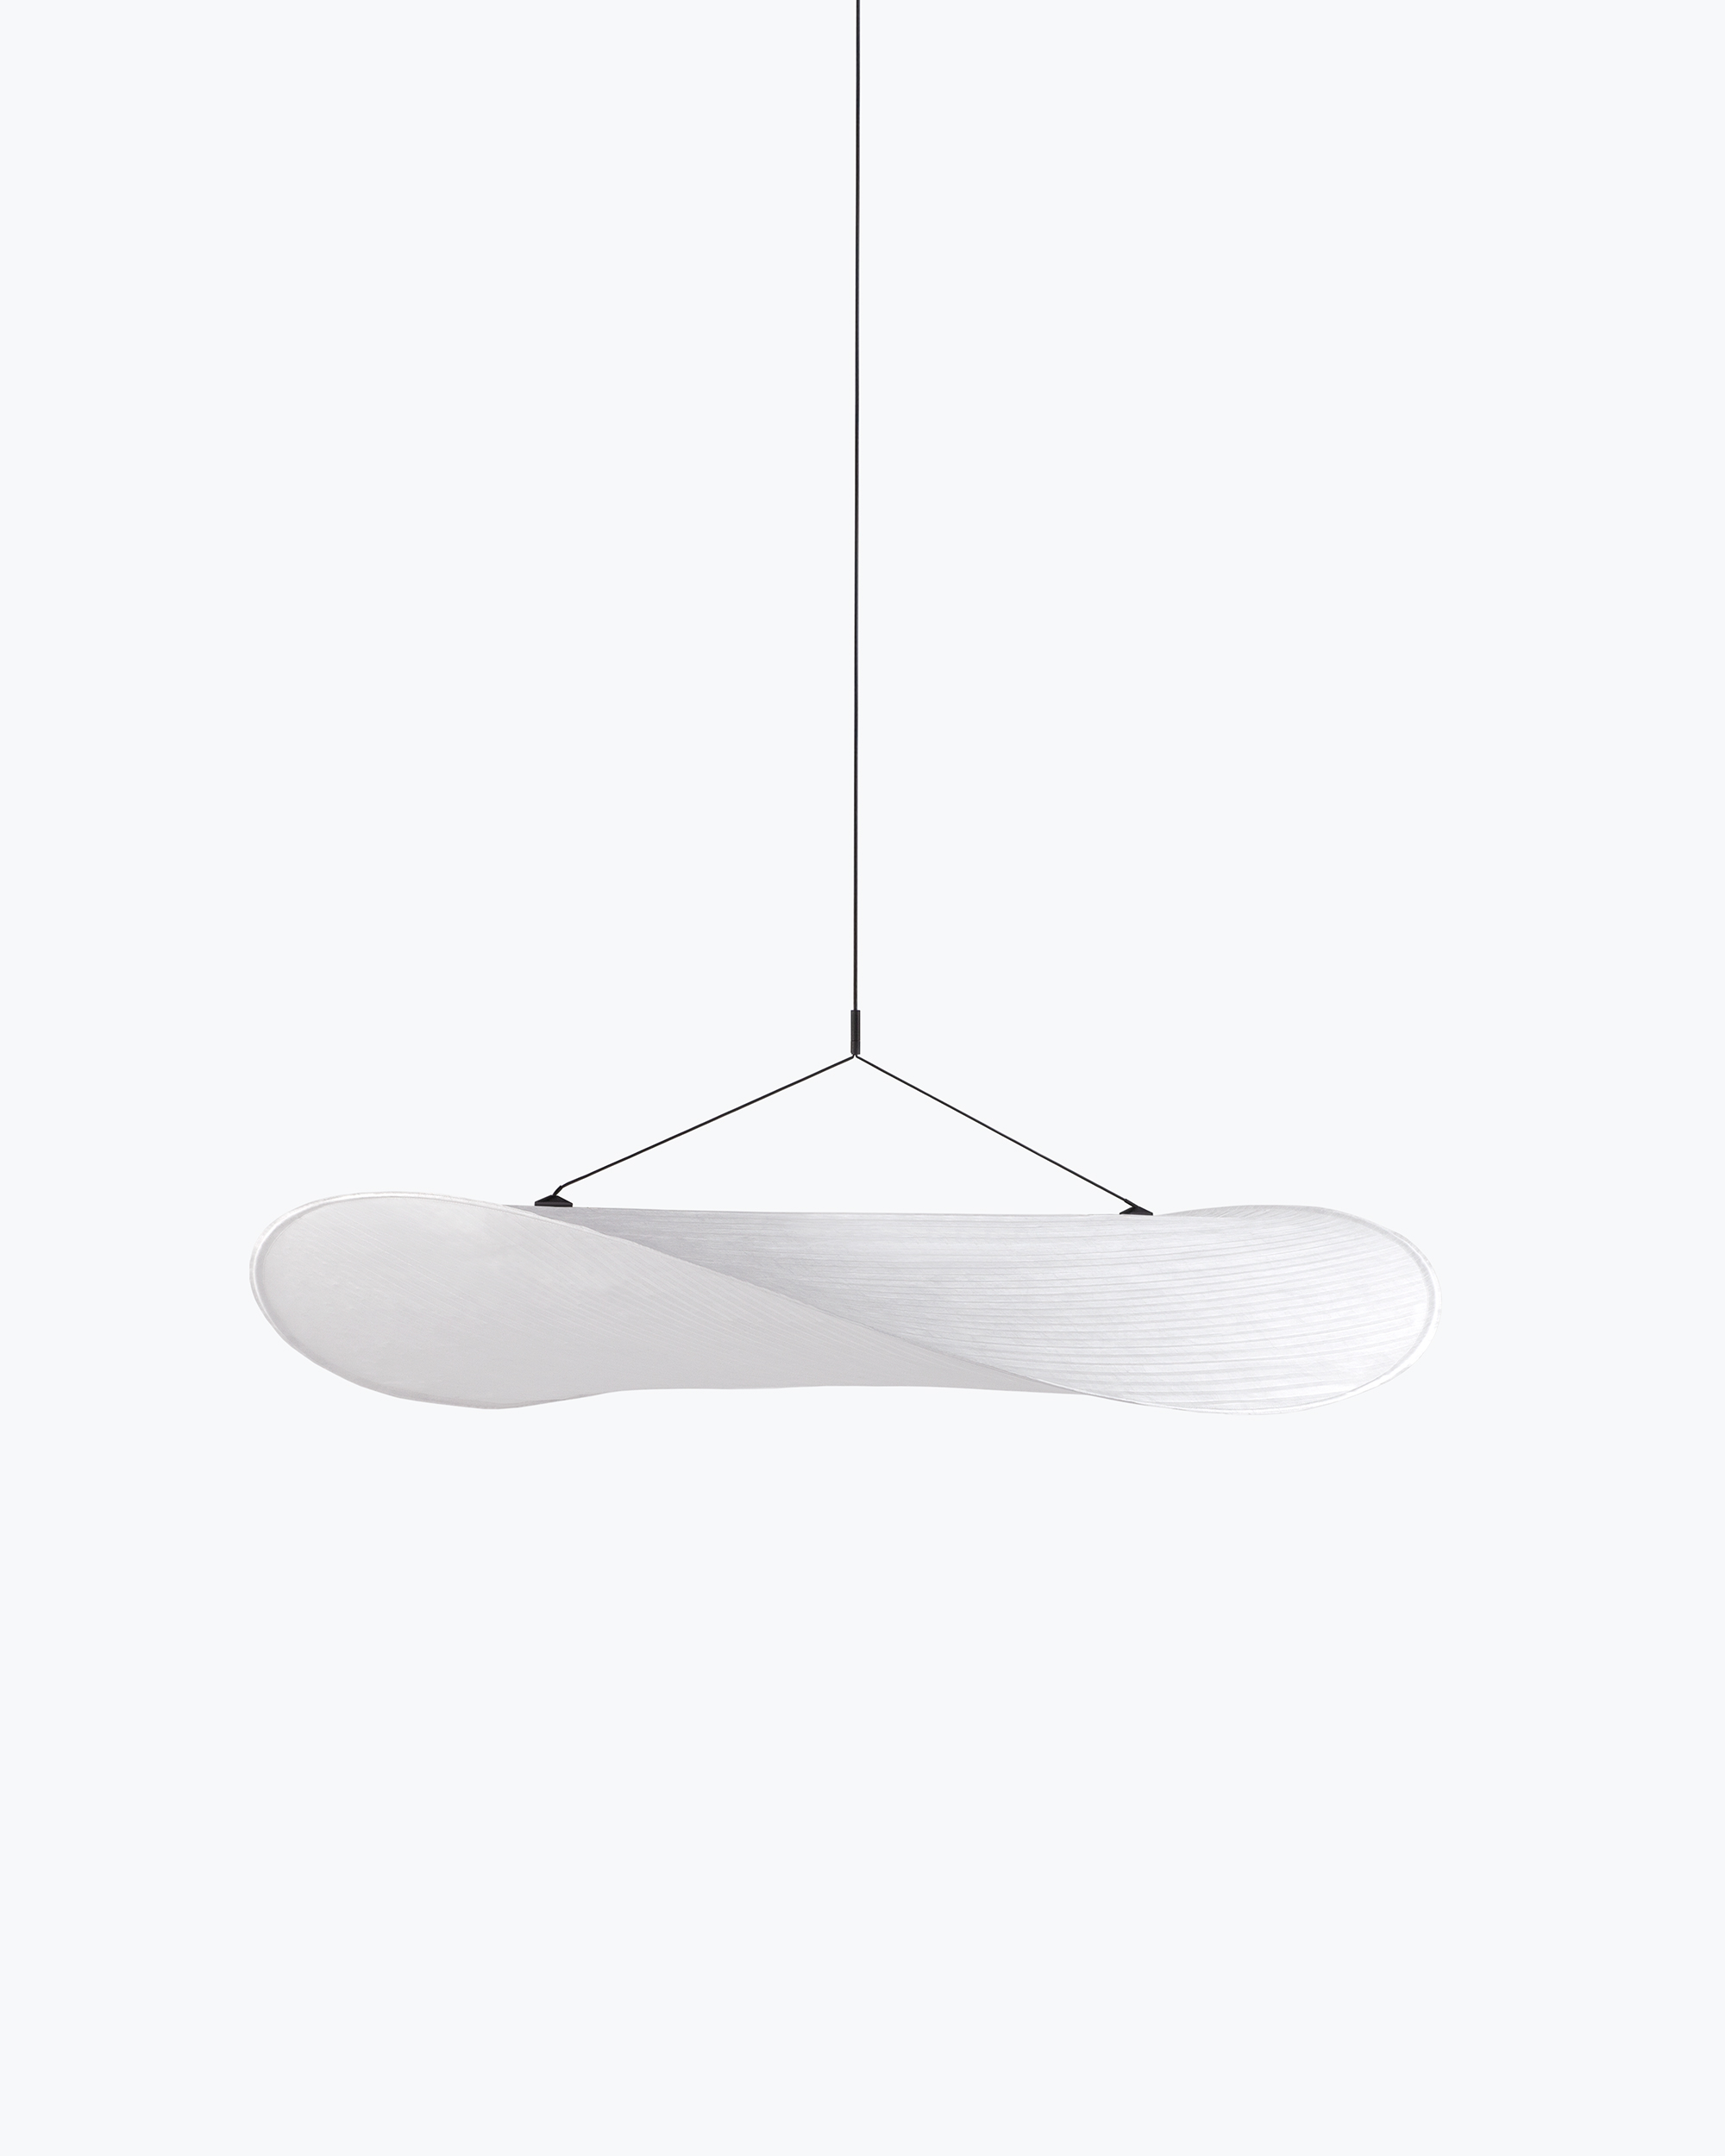 Japanese style white pendant lamp by New Works